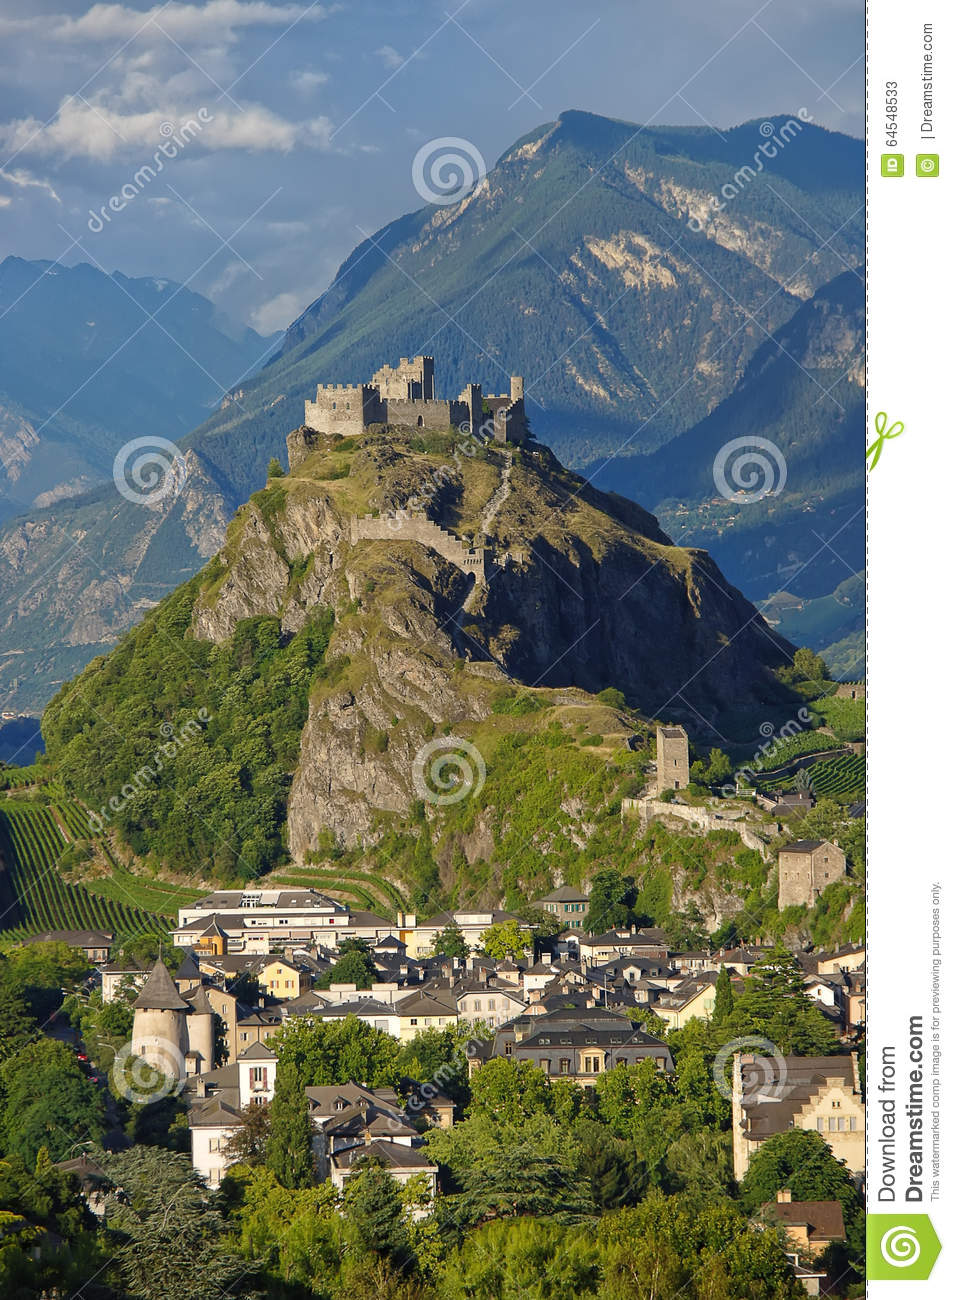 The Medieval Castle Tourbillon And The Town Of Sion Switzerland.